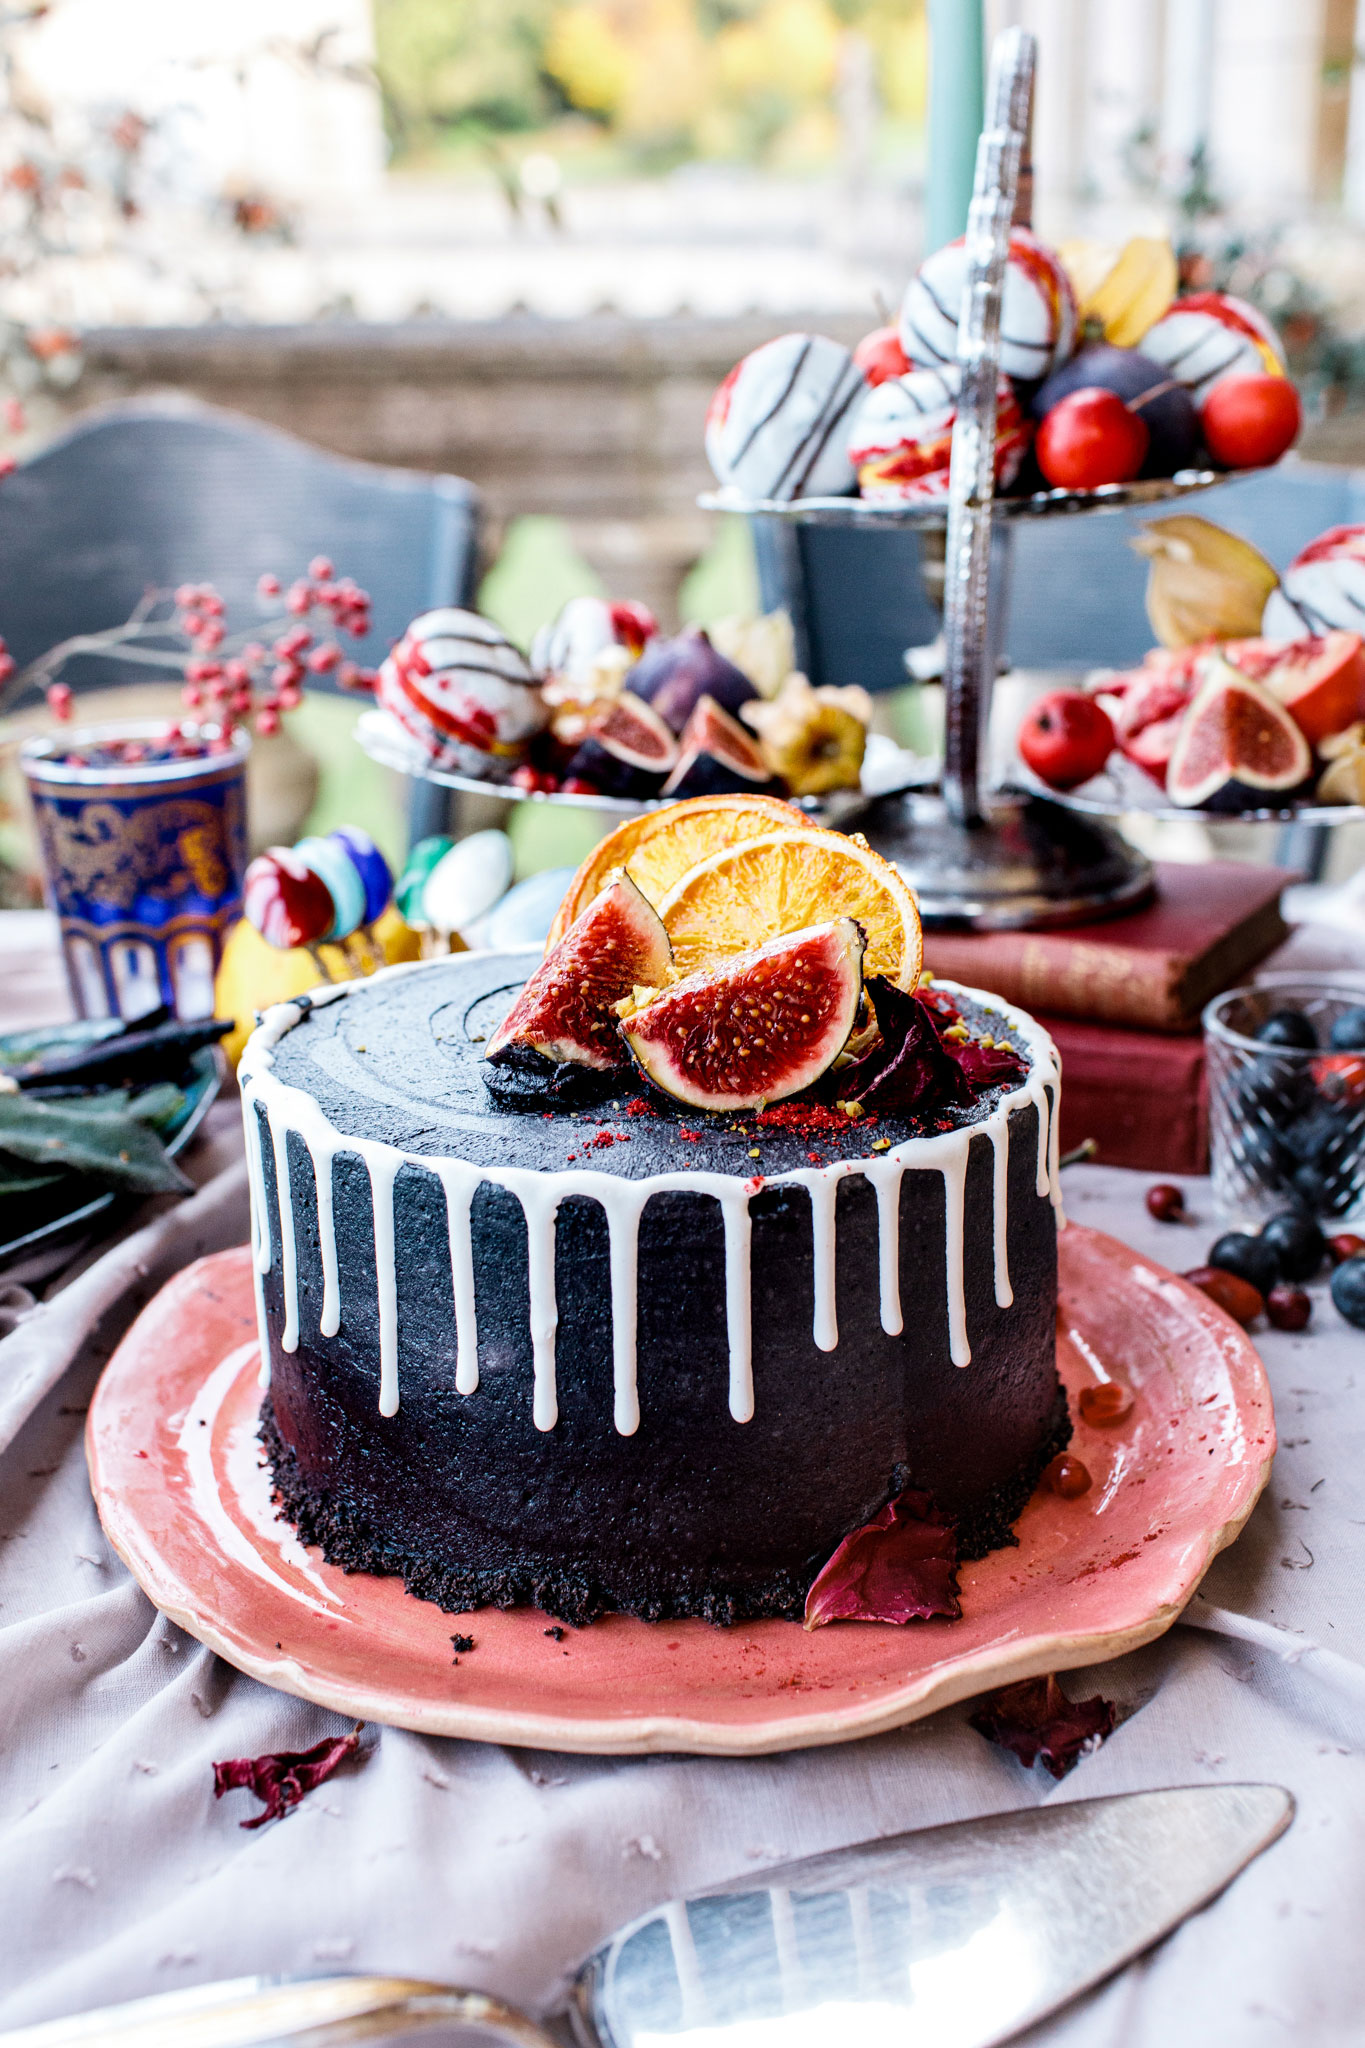 black vegan wedding cake with figs and icing dripping down